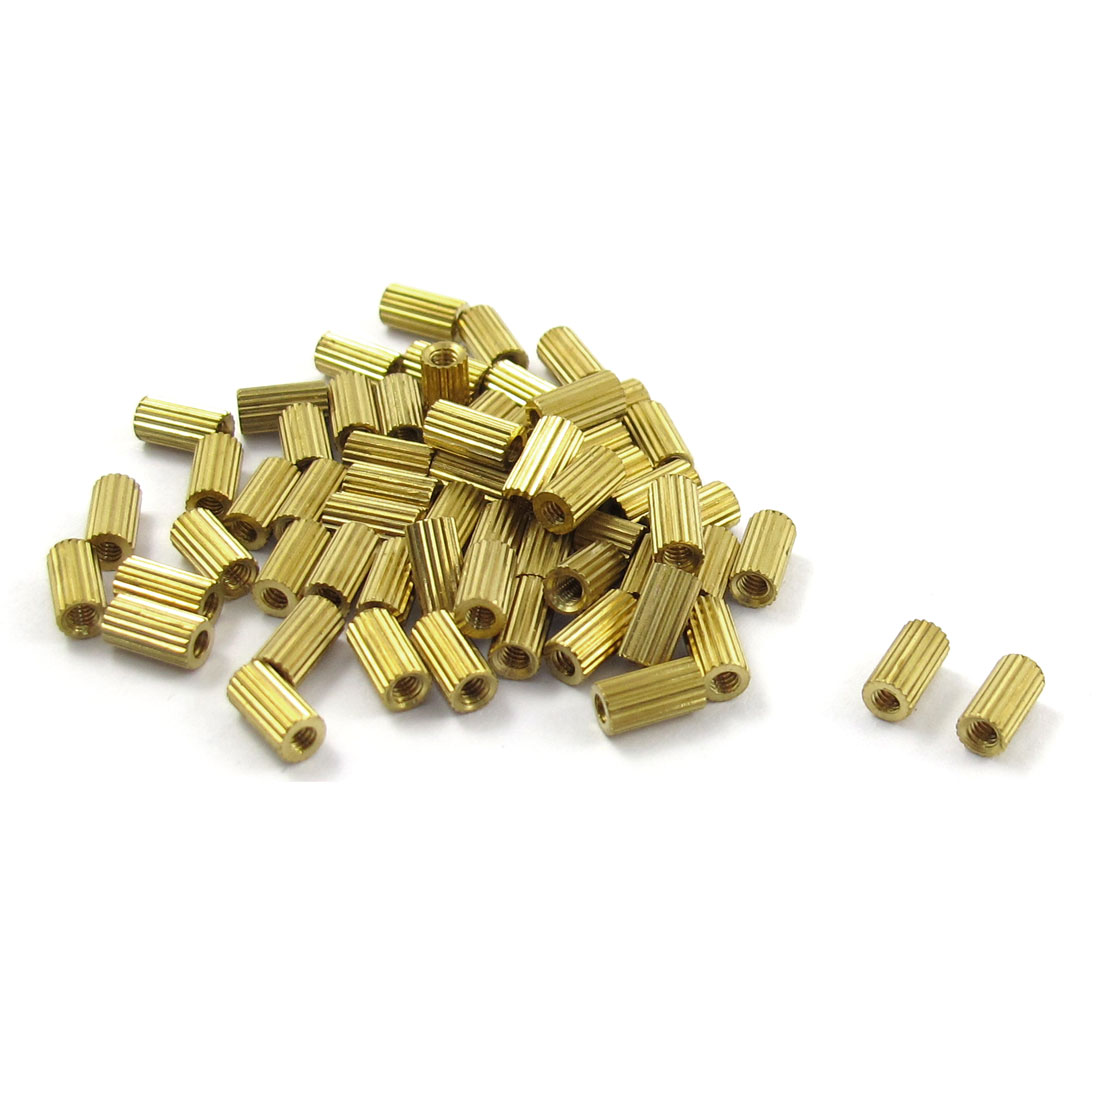 M2x6mm Cylinder Shaped Female Threaded Brass Standoff Spacer 50Pcs